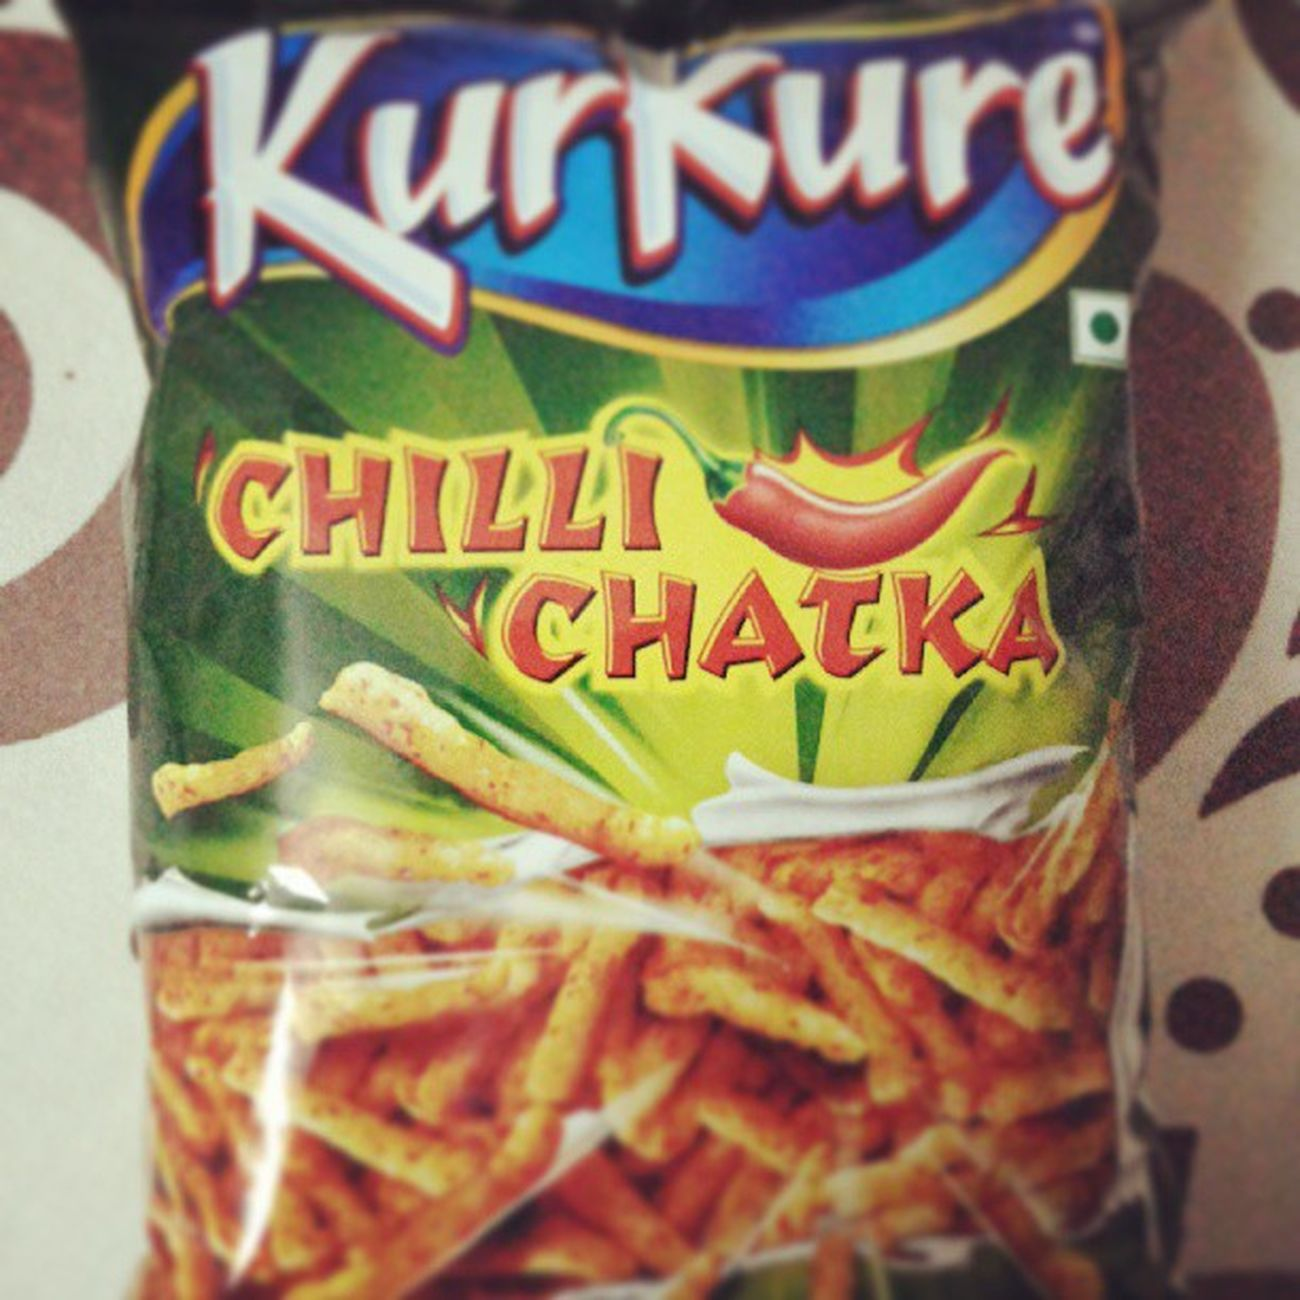 Kurkure Chillichatka Potato For empty stomach very good tasty spicy and very cheap price